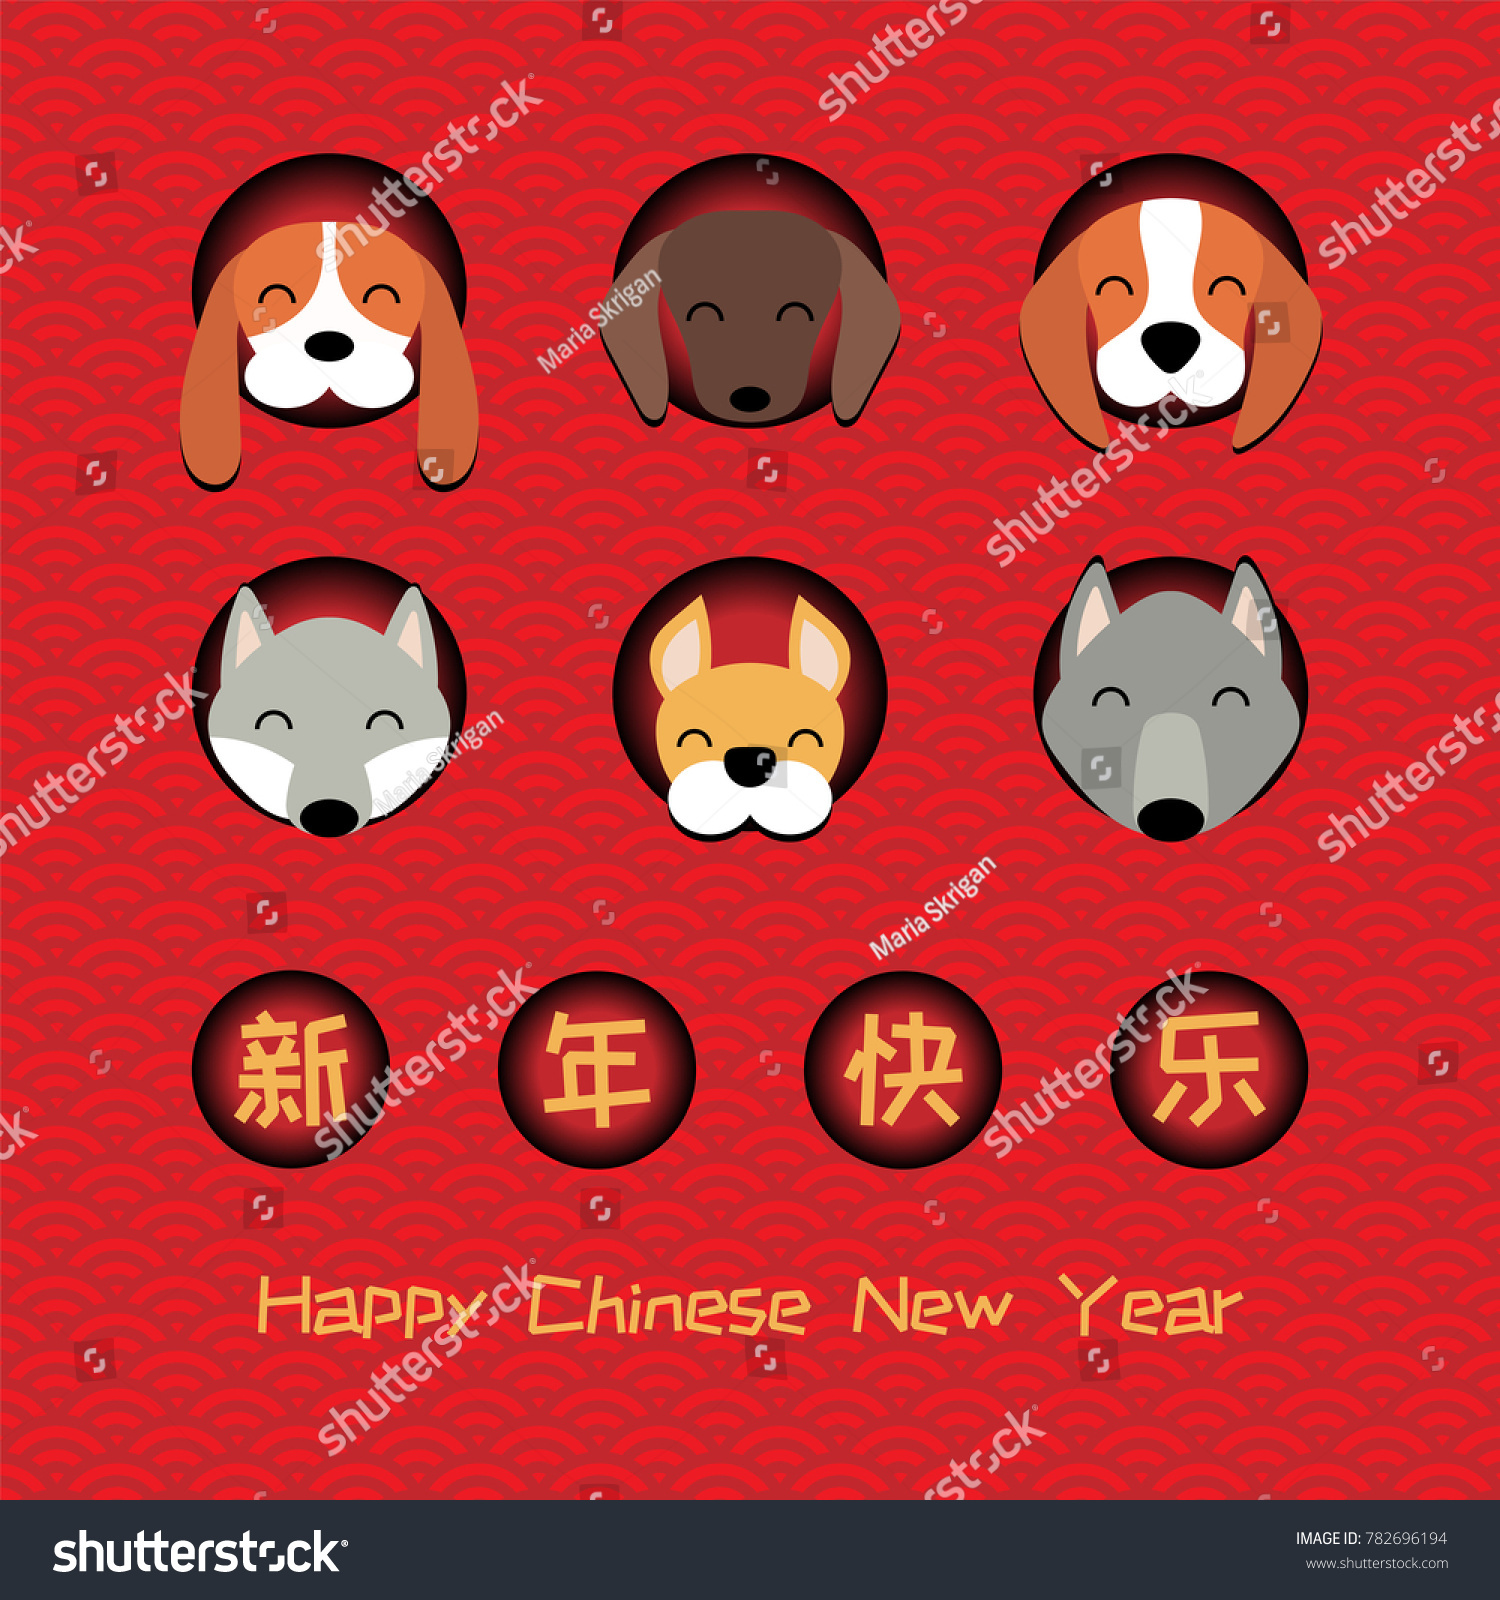 2018 chinese new year greeting card stock vector 782696194 2018 chinese new year greeting card banner with cute funny cartoon dogs typography kristyandbryce Gallery